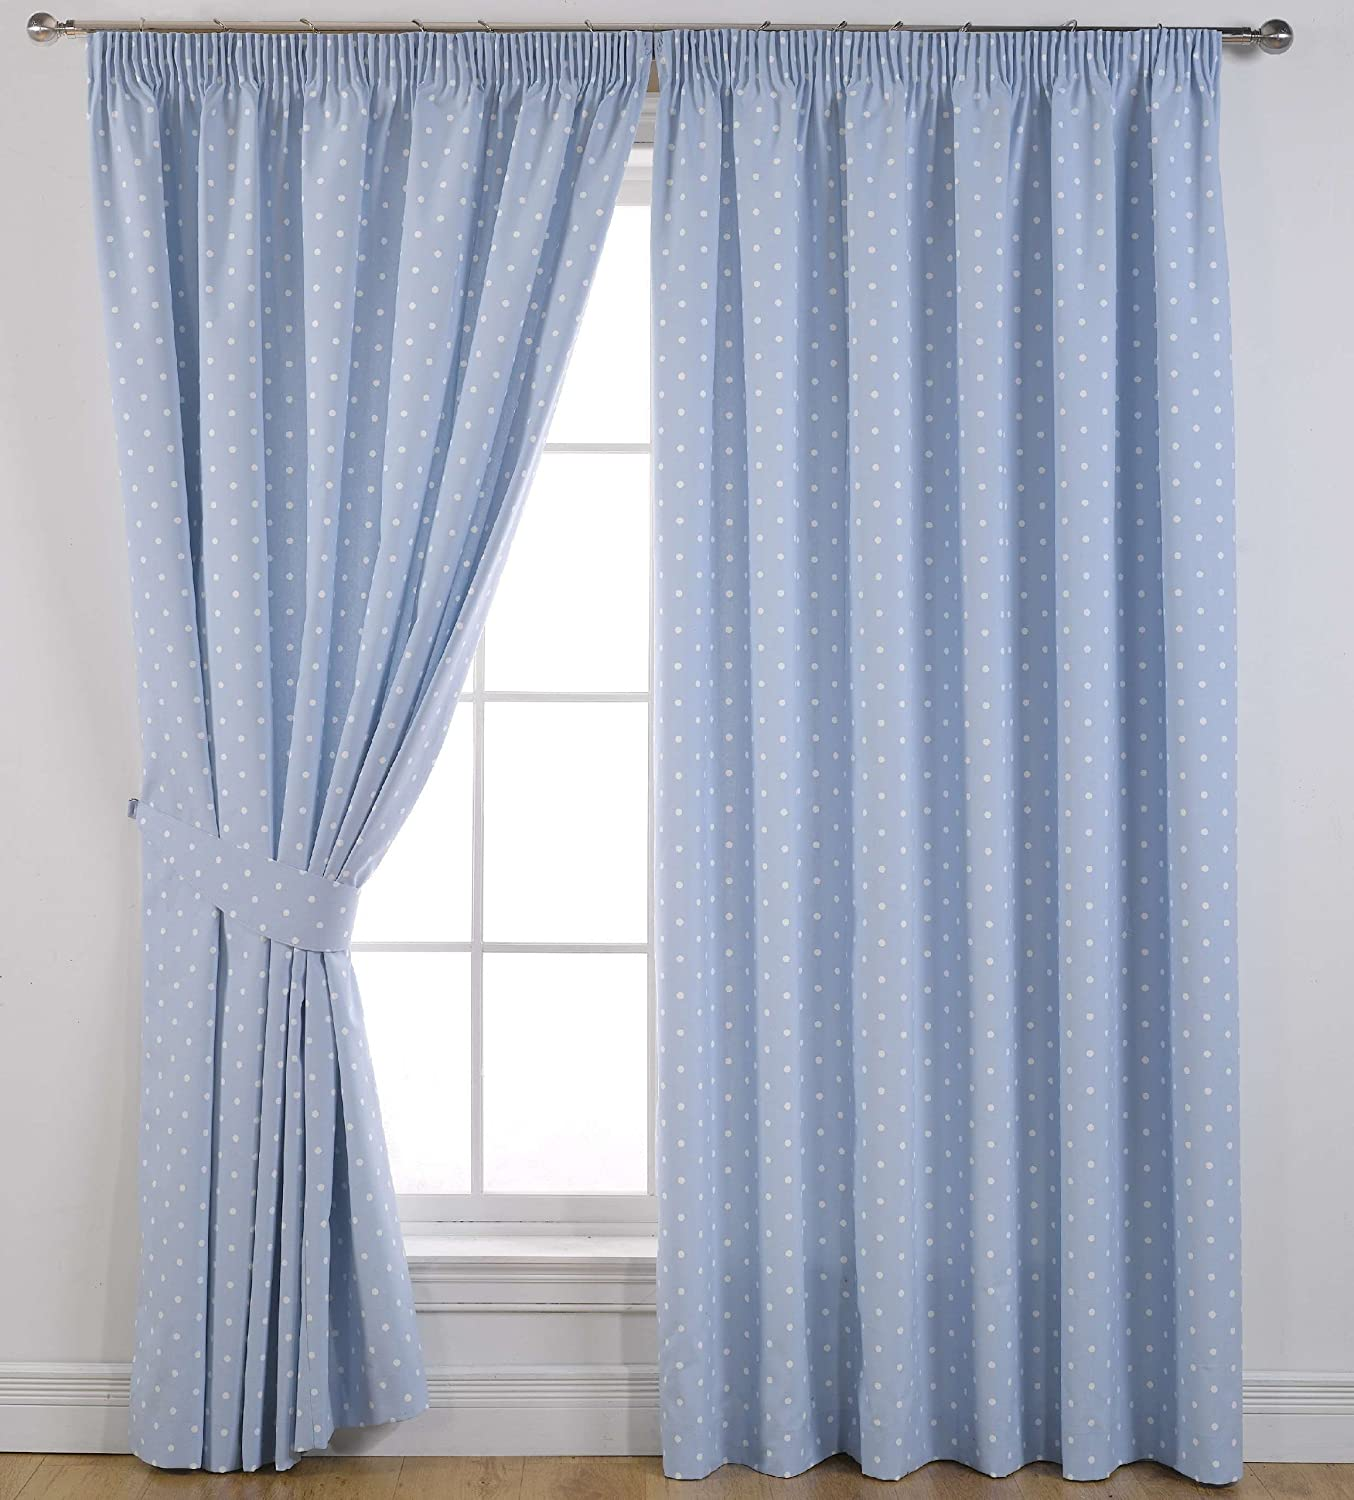 clearwater coastal curtains multi ascot p treatment striped x valance layered window cool blue